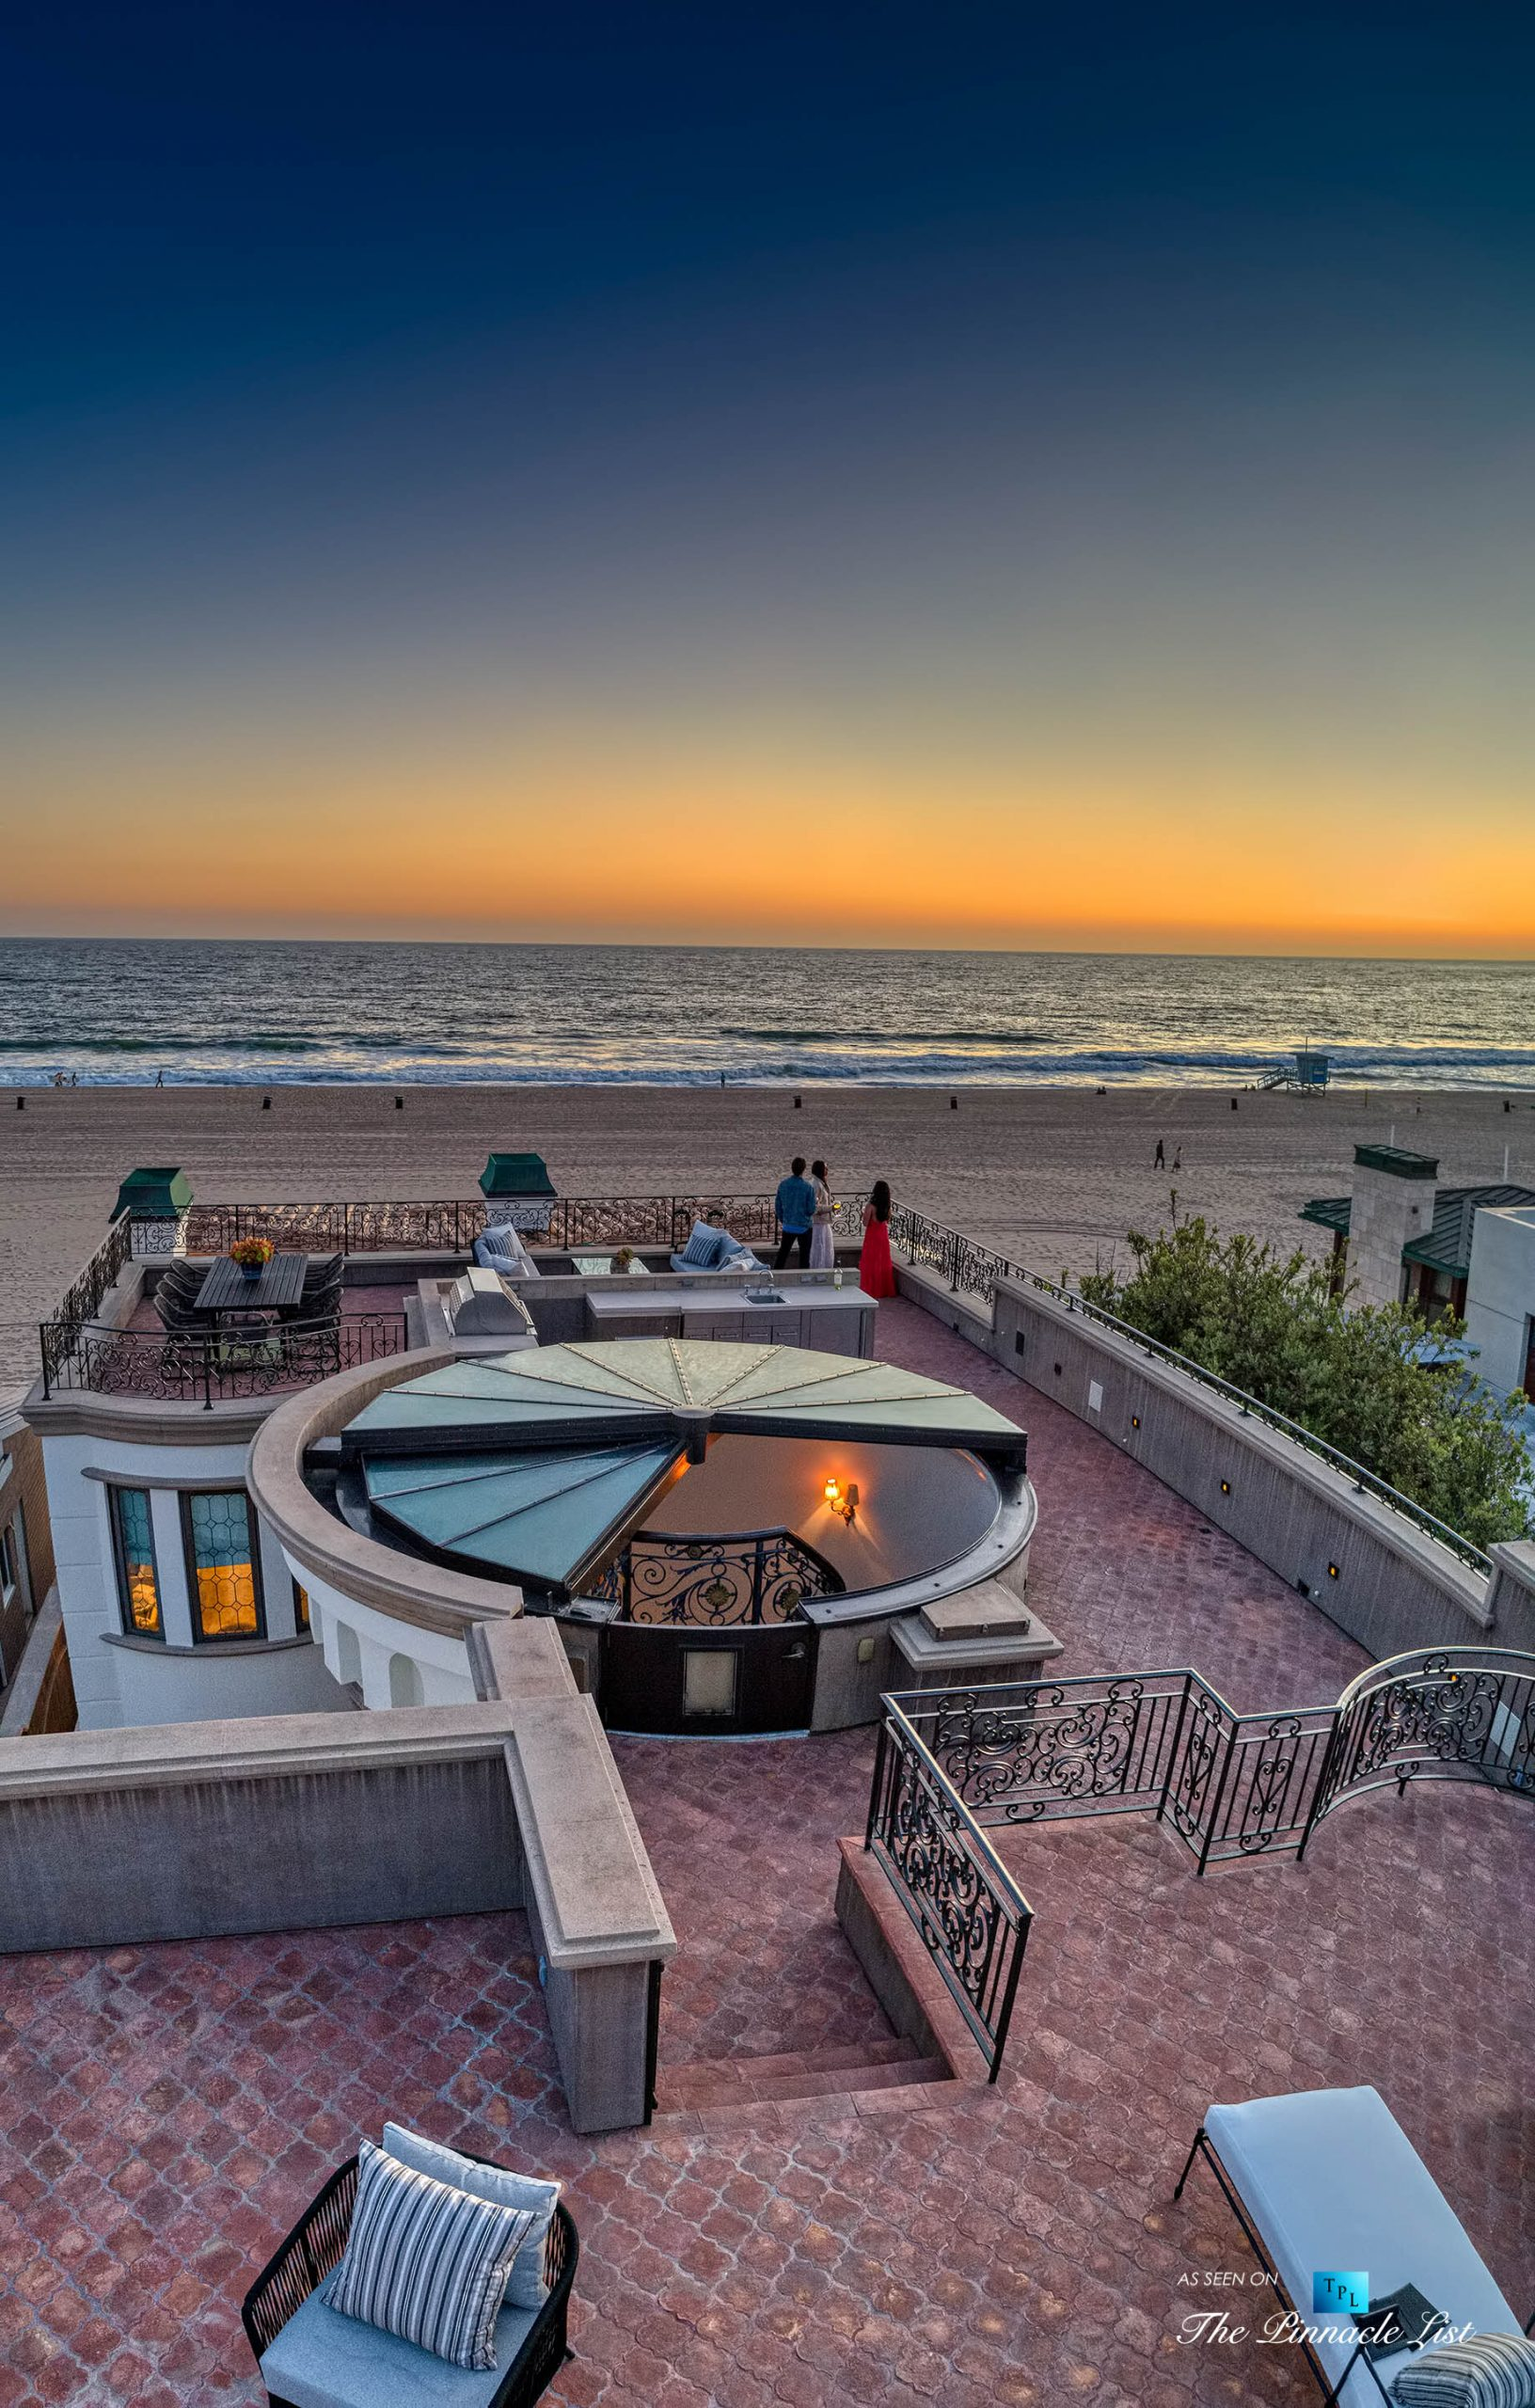 2806 The Strand, Hermosa Beach, CA, USA – Rooftop Deck at Sunset – Luxury Real Estate – Oceanfront Home